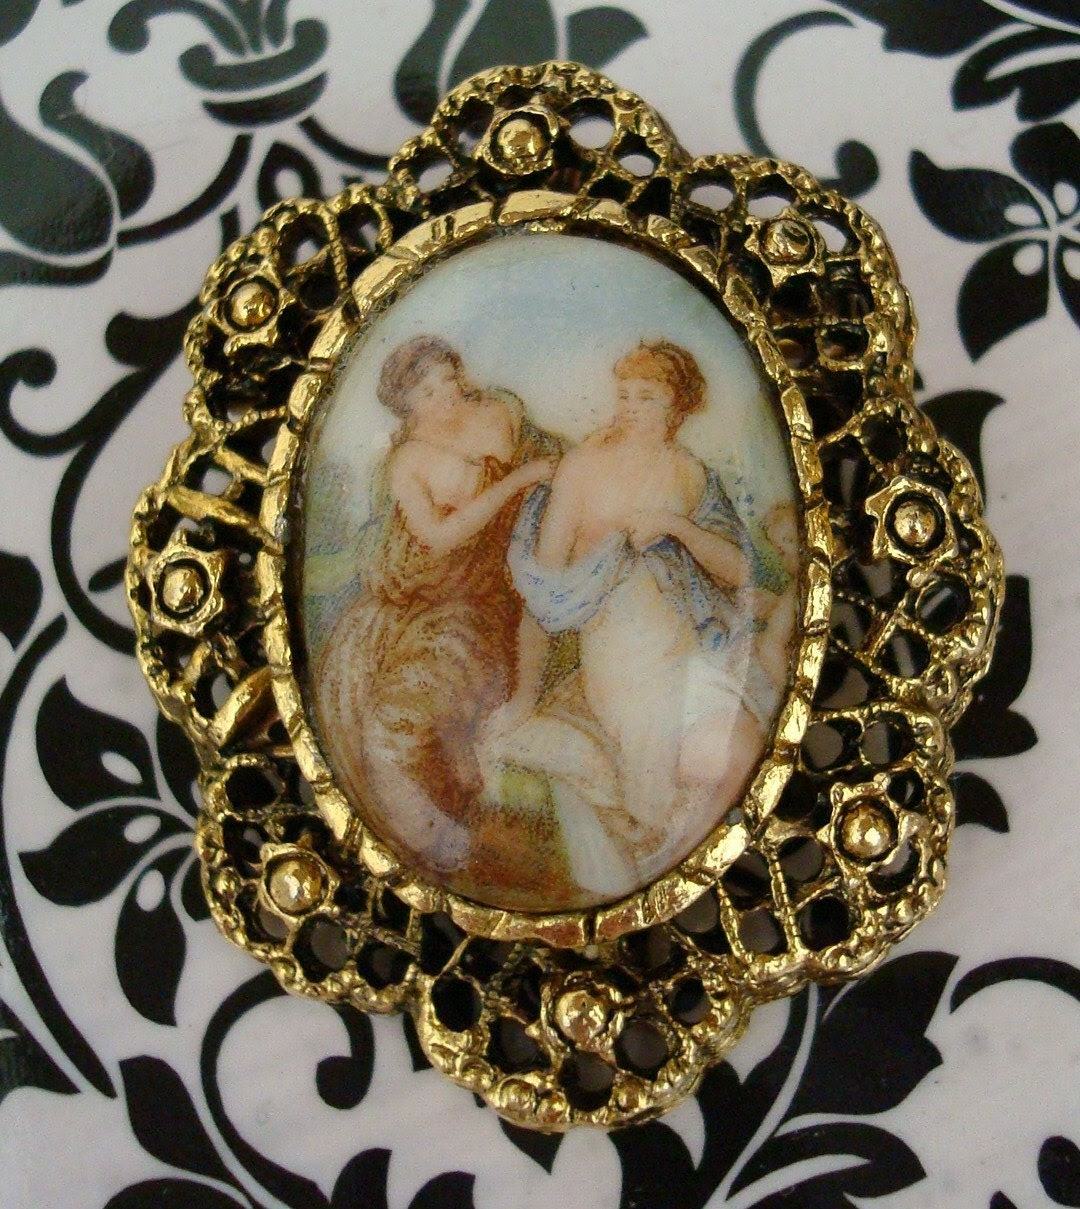 Stroud - English Vintage Brooch/Pendant